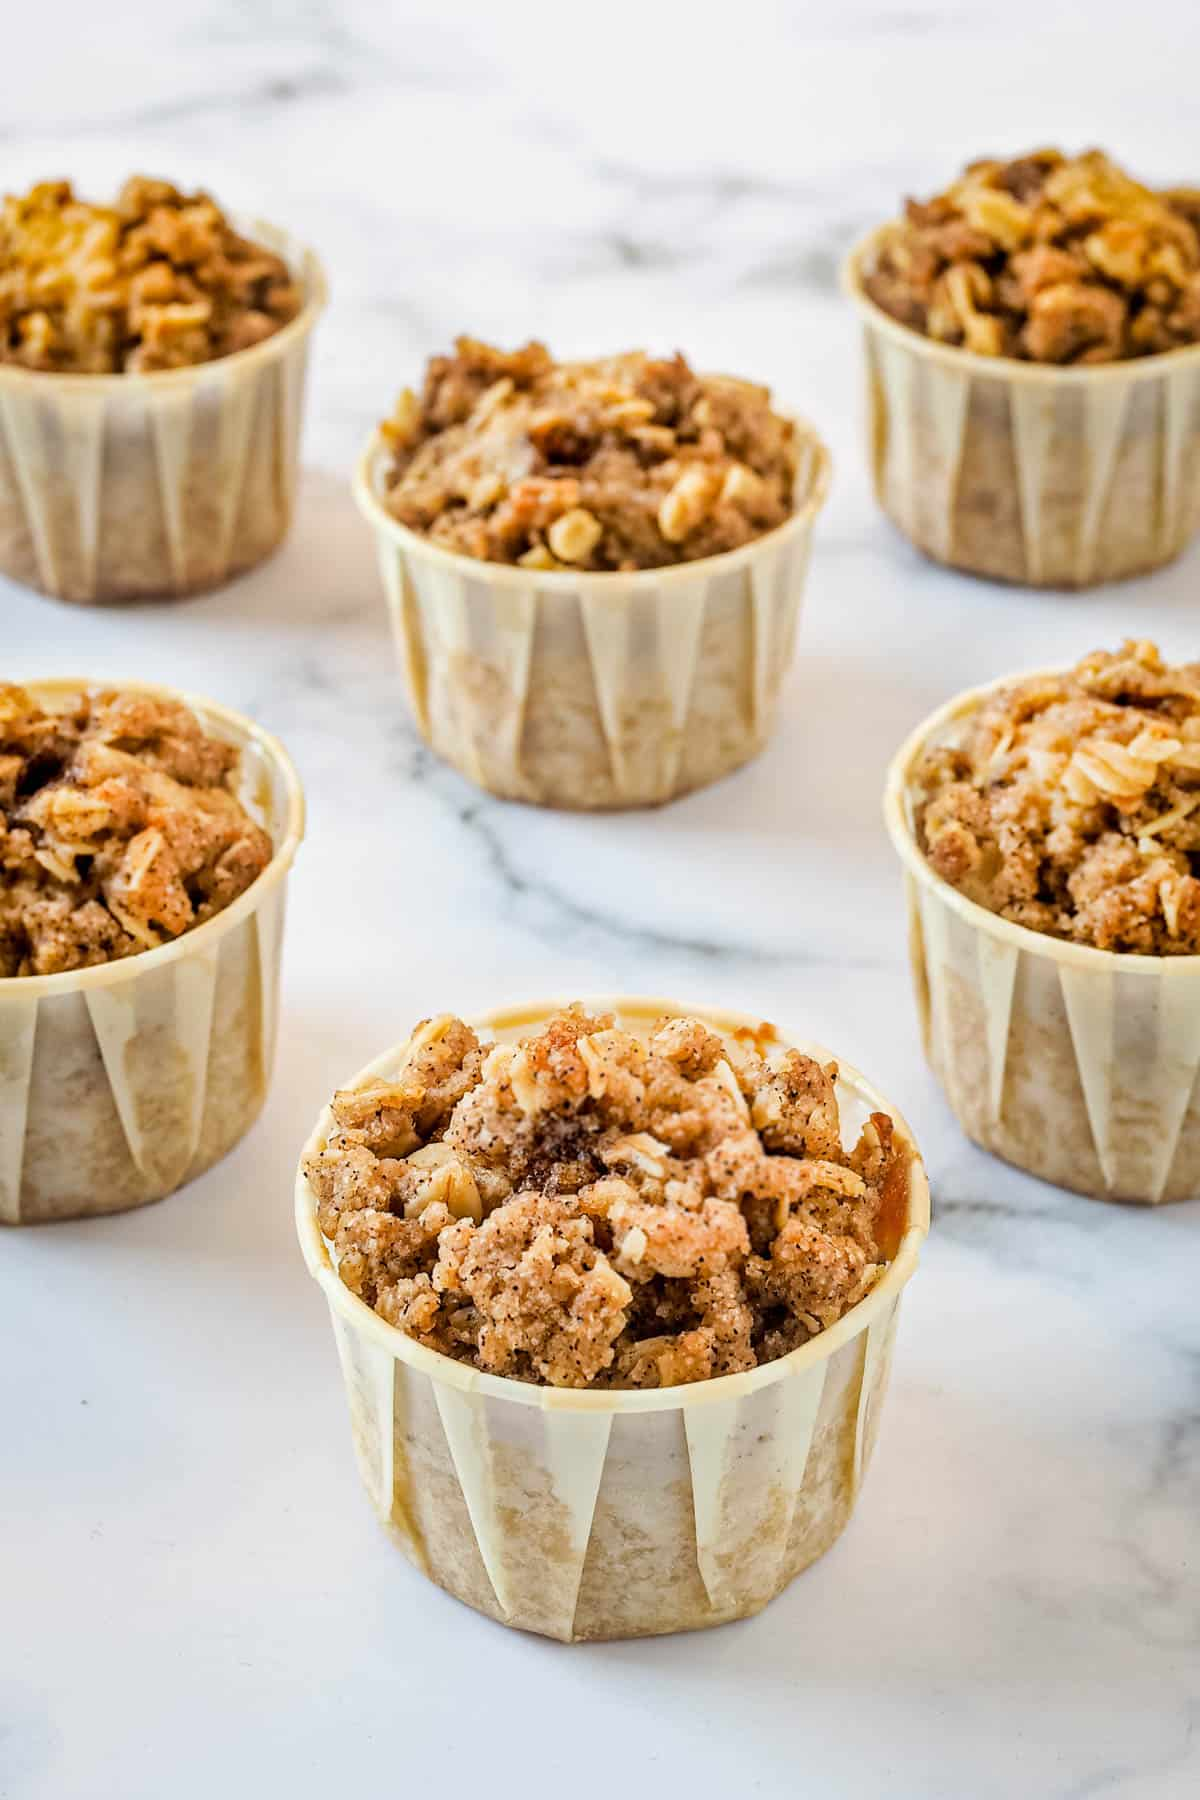 Streusel muffins against marble background